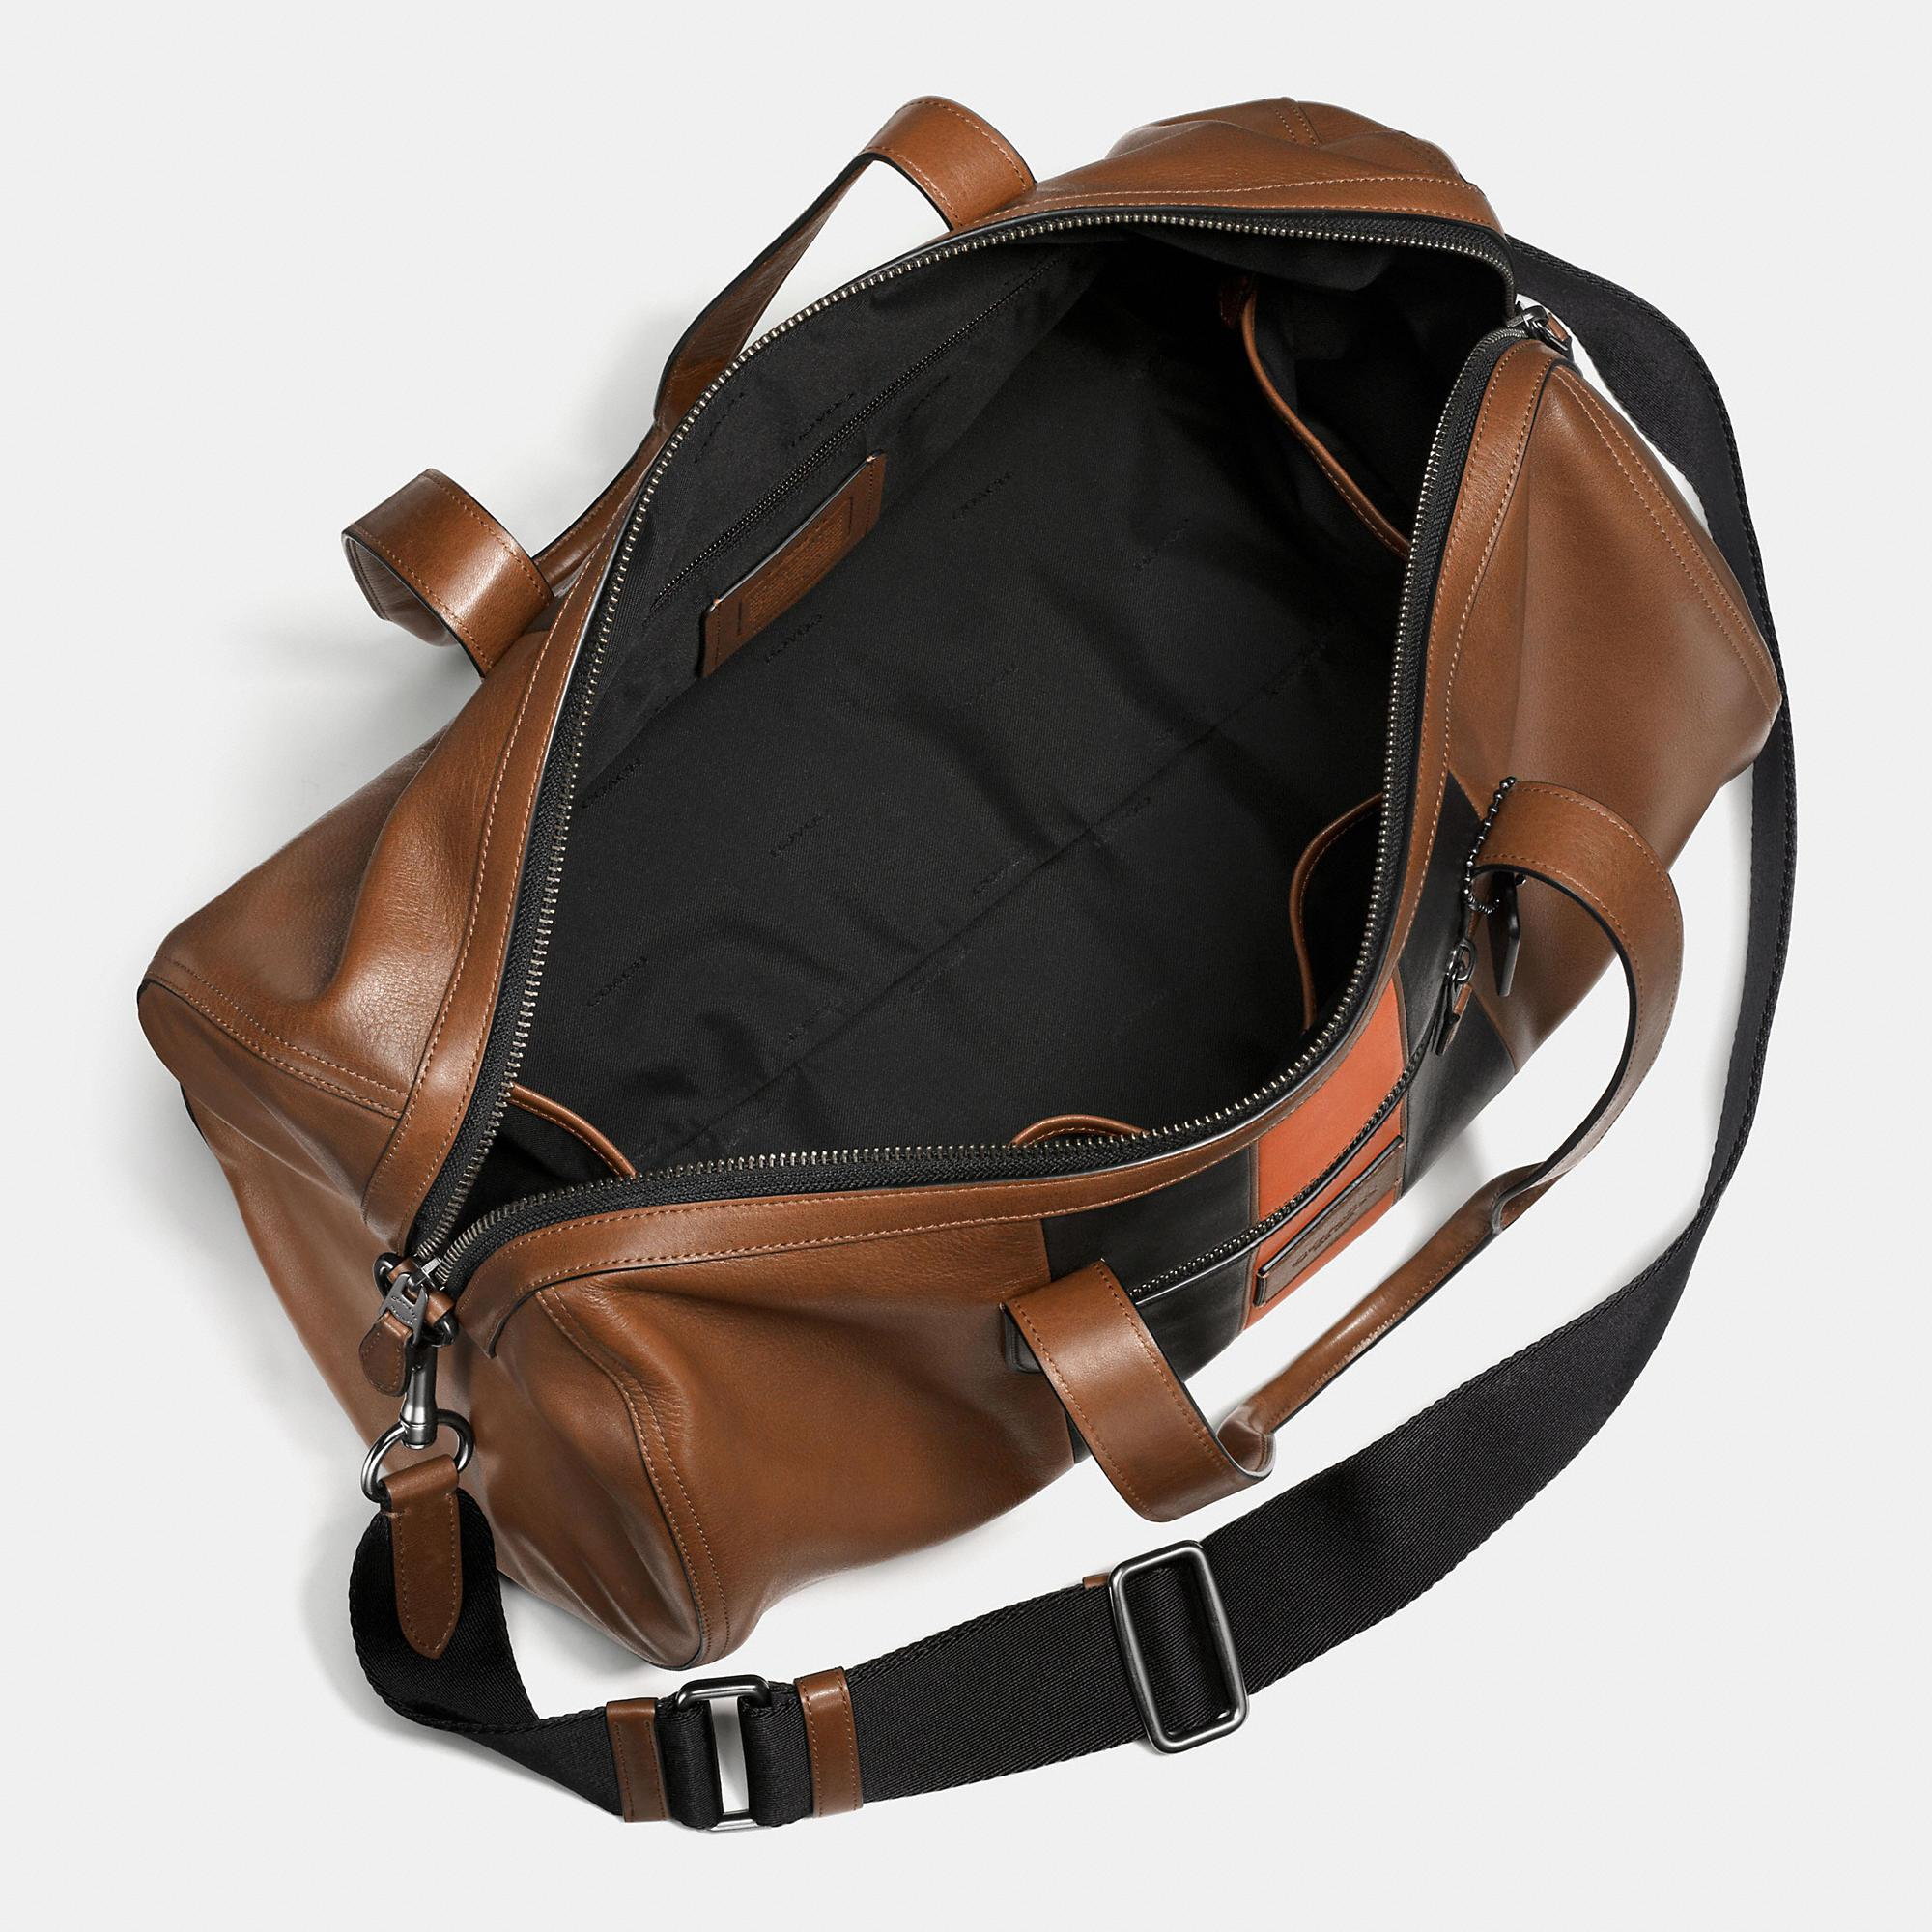 3adc64054e58 Lyst - COACH Metropolitan Soft Gym Bag In Sport Calf Leather With Varsity  Stripe in Brown for Men